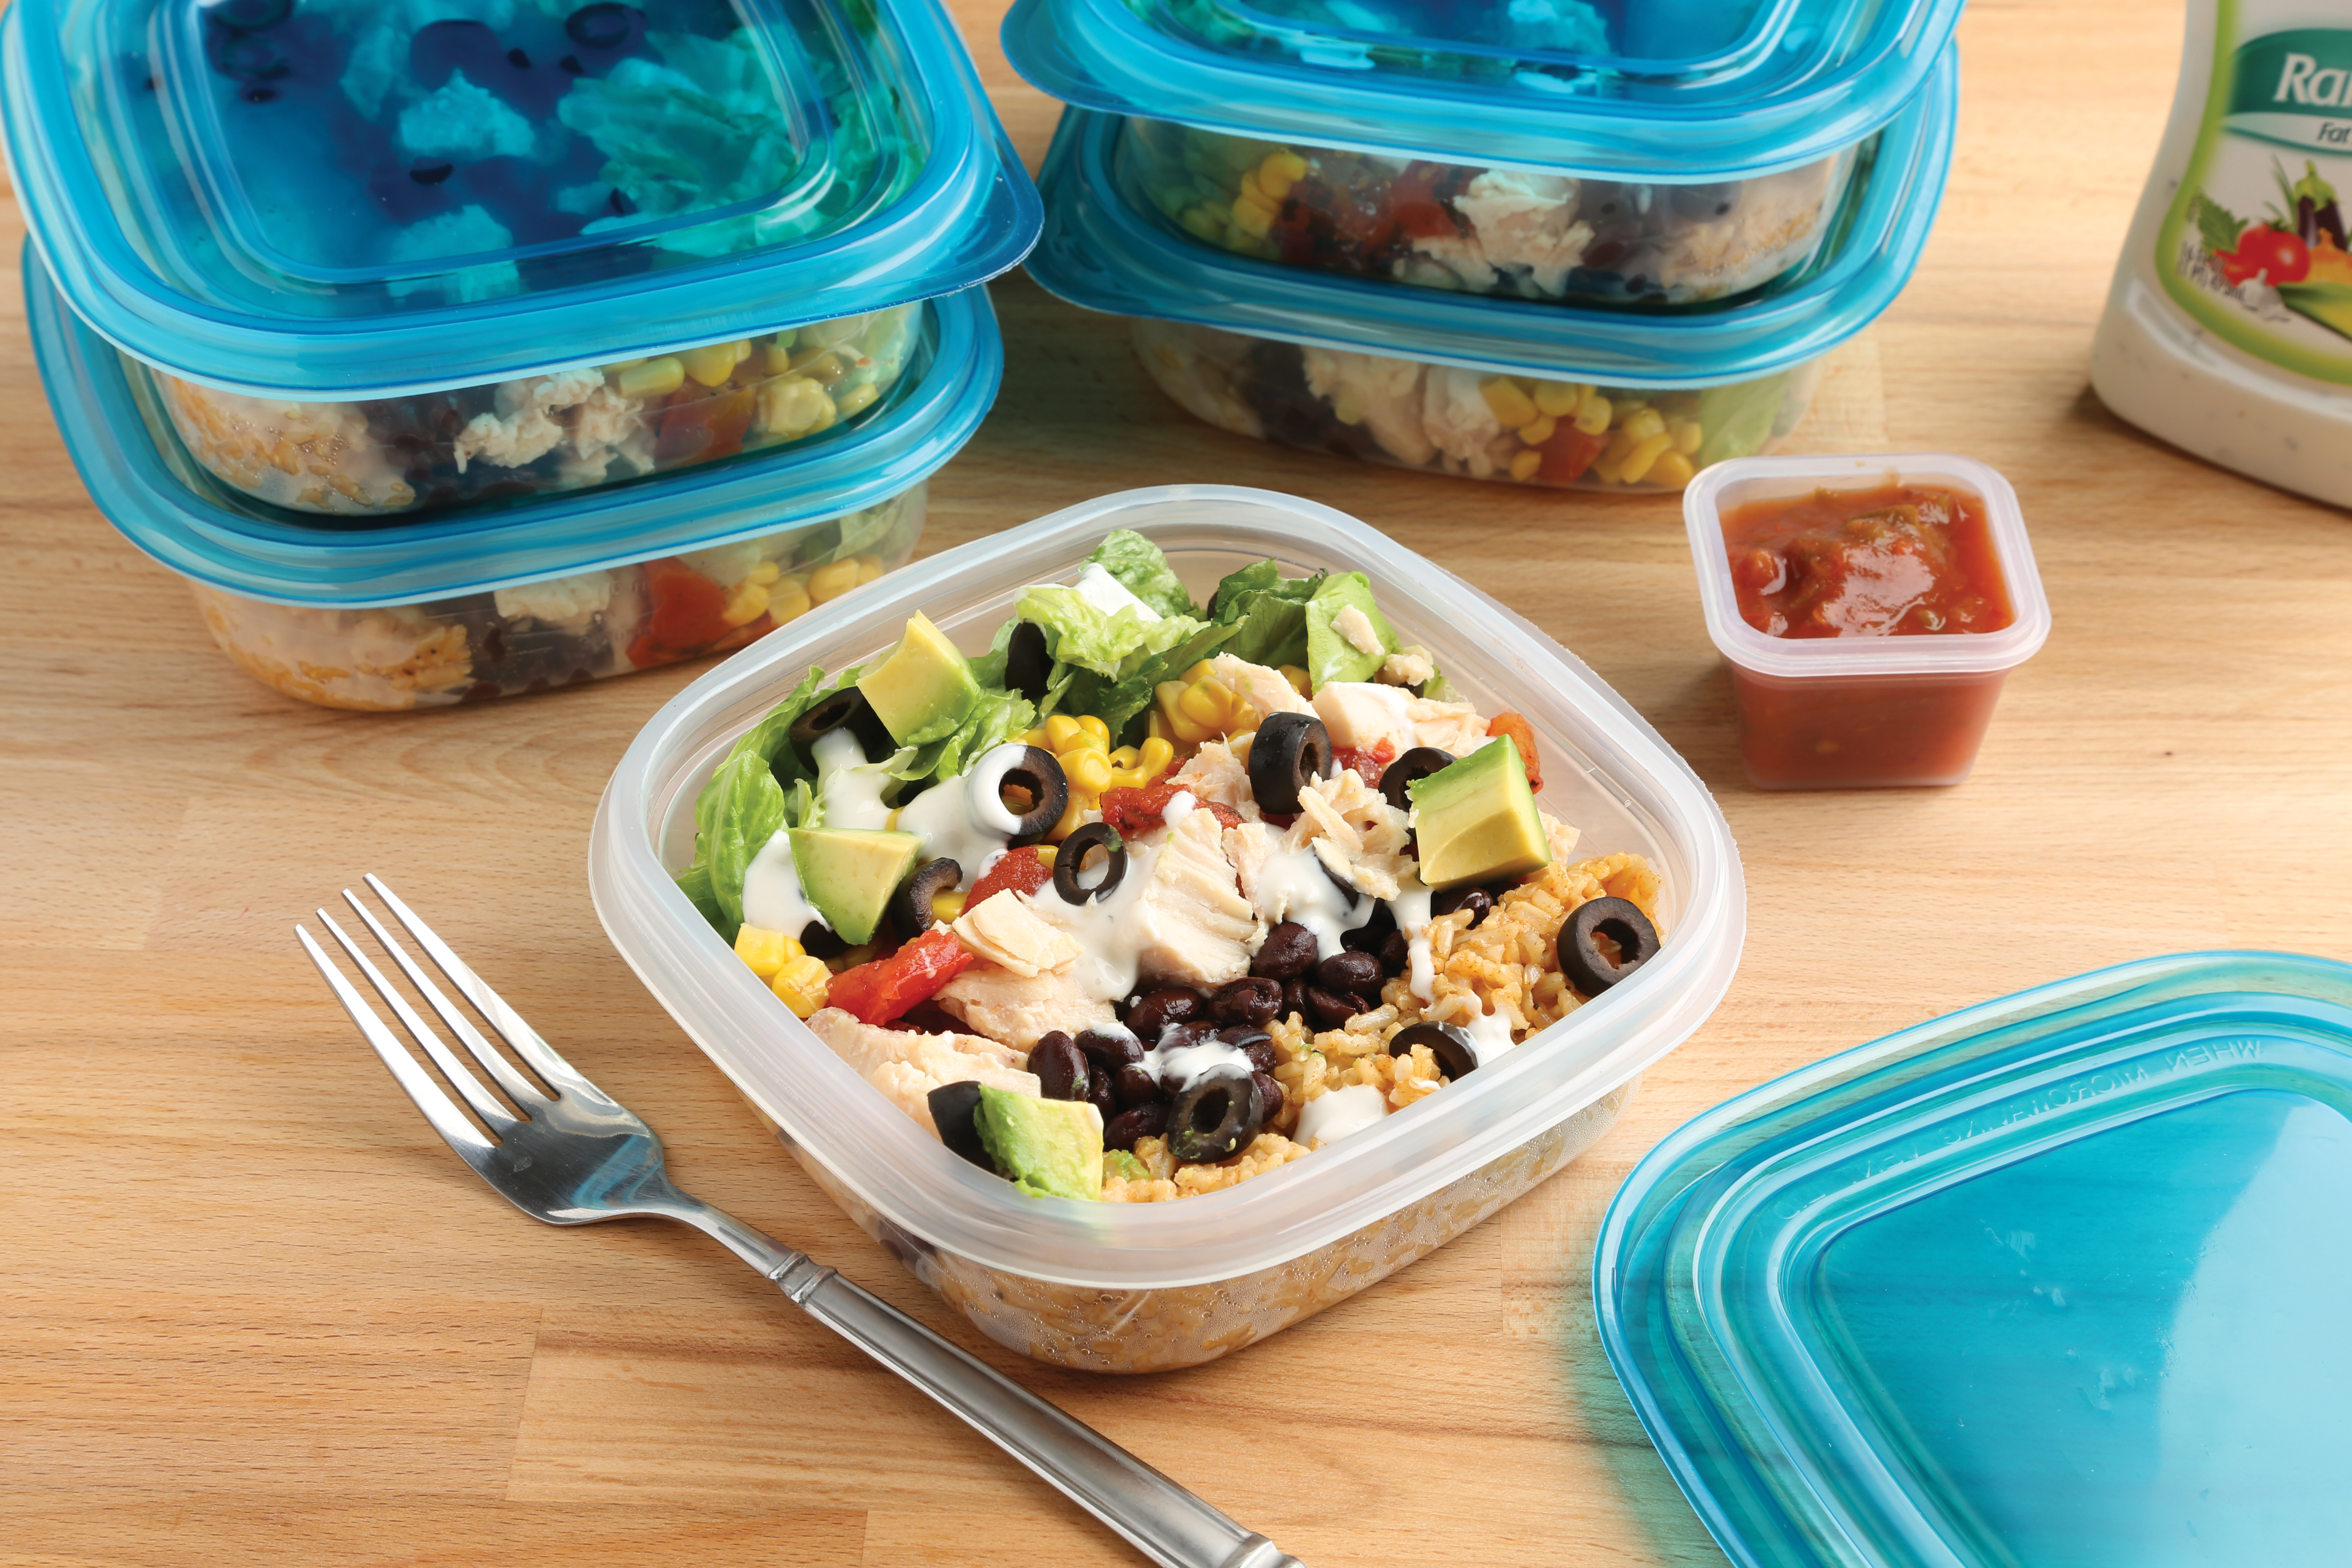 Chicken Burrito Lunch Bowls - Best Choice Recipe Video of January